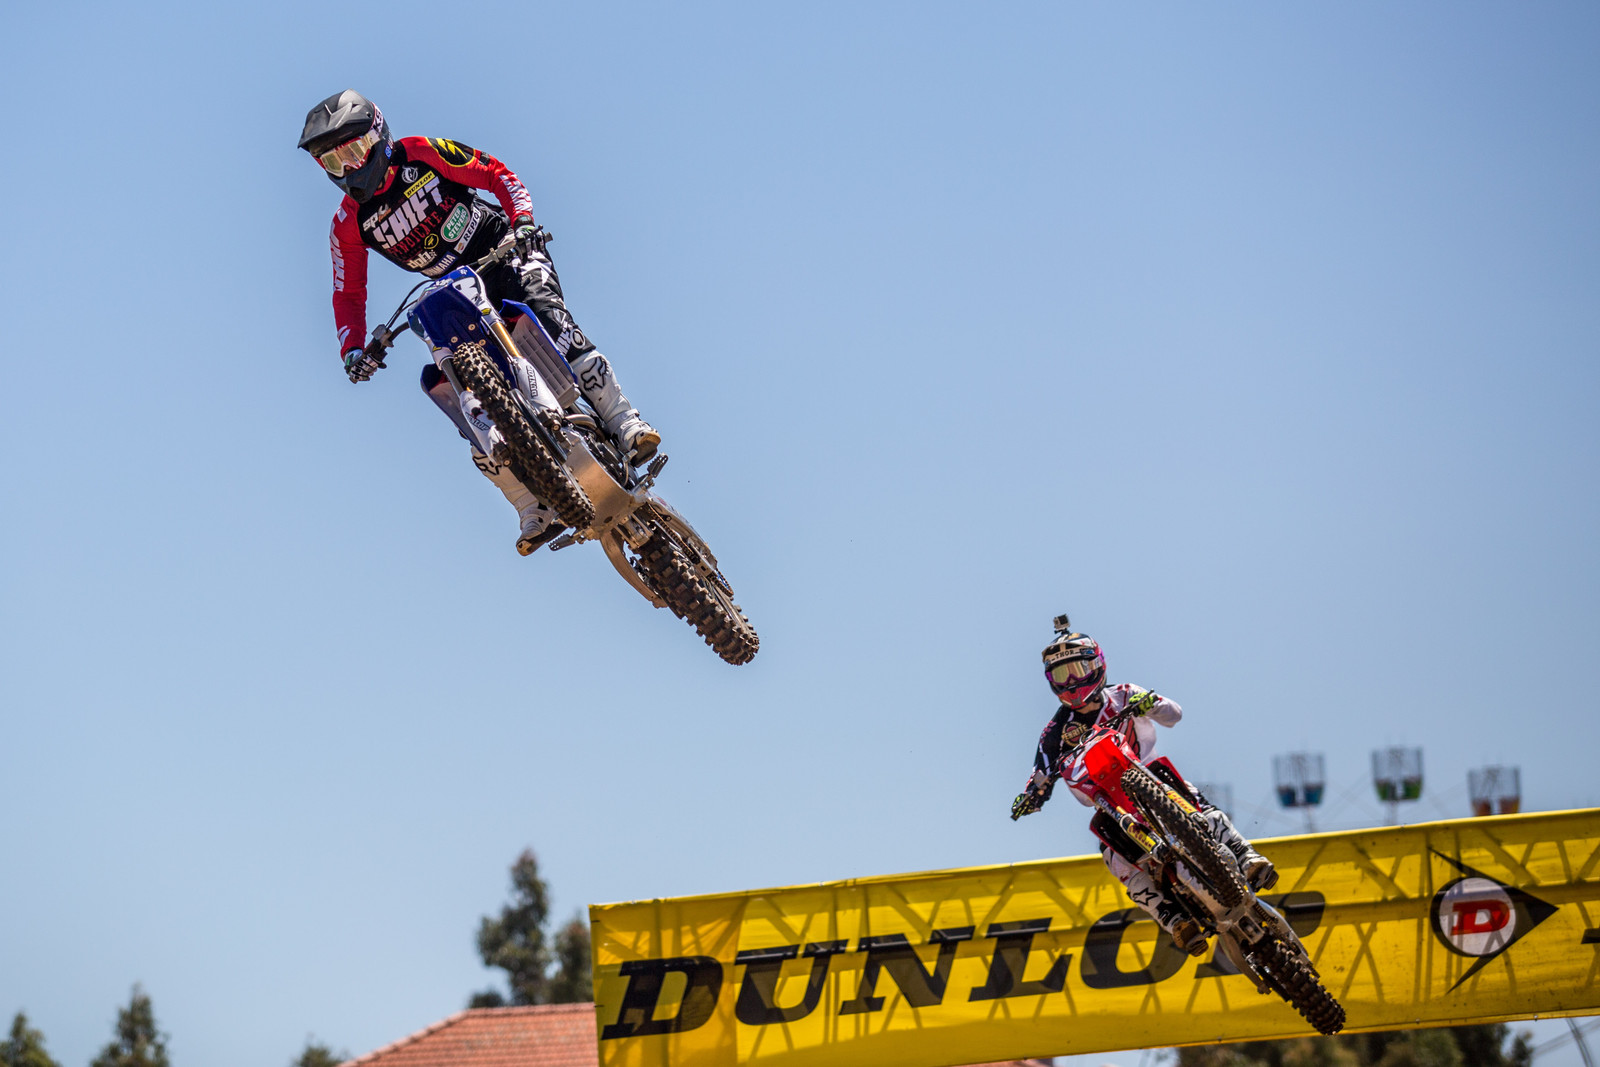 Wade Hunter - Photo Blast: Australian Supercross Championship from Adelaide - Motocross Pictures - Vital MX